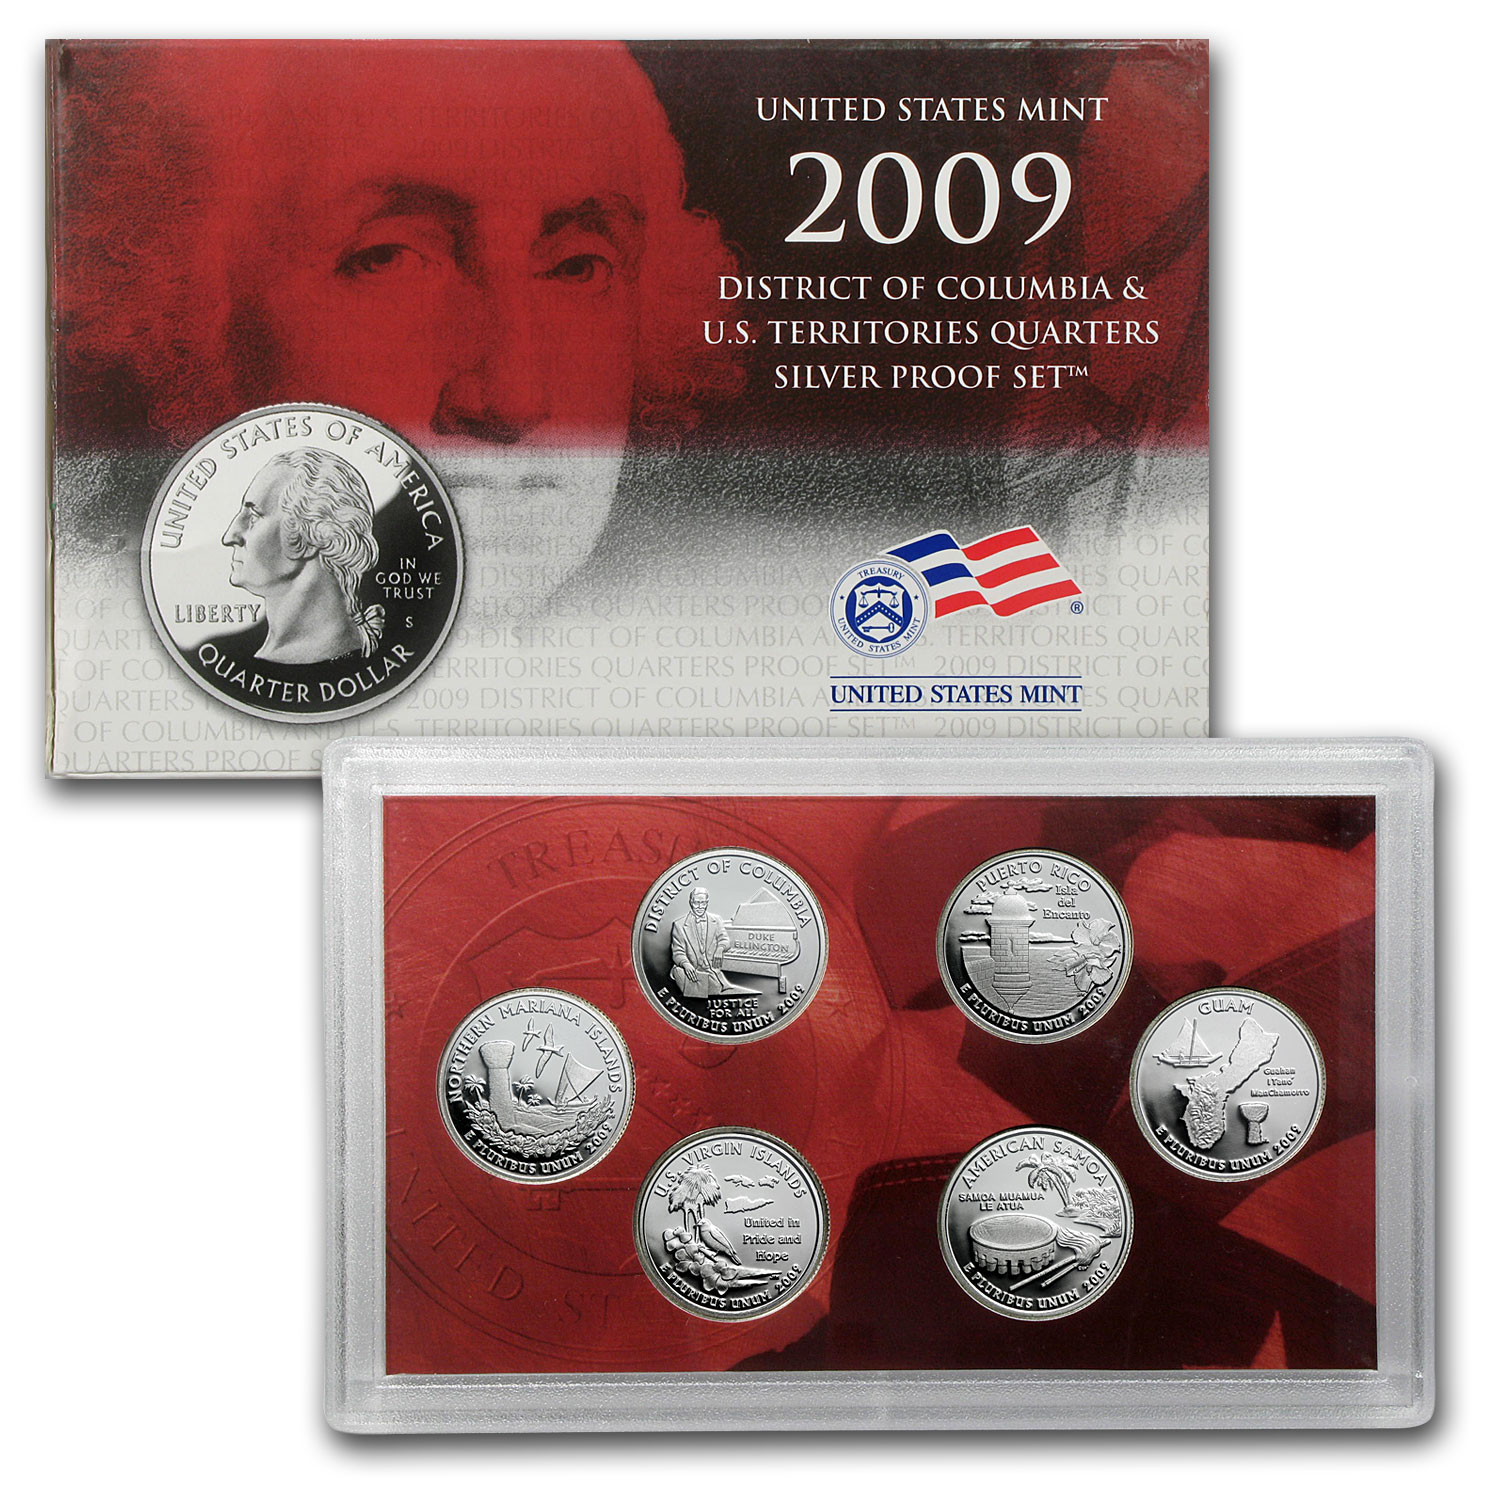 2009 D.C. and U.S. Territories Quarters Silver Proof Set